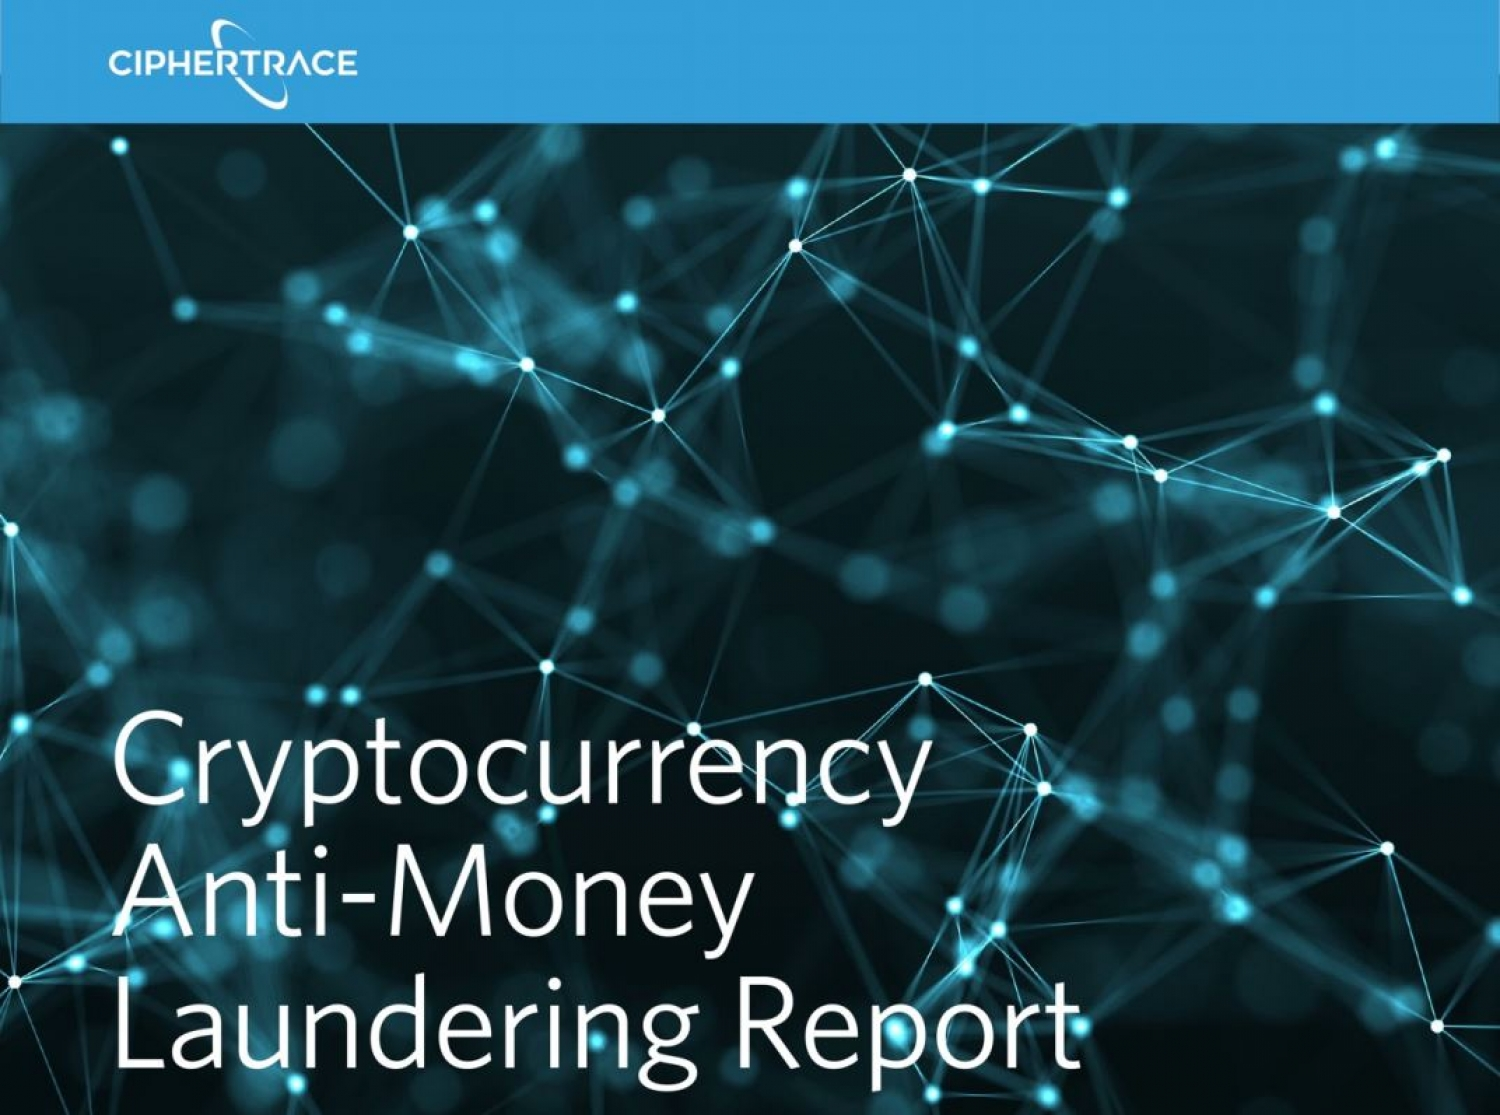 CRYPTOCURRENCY ANTI-MONEY LAUNDERING REPORT - Q3 2018